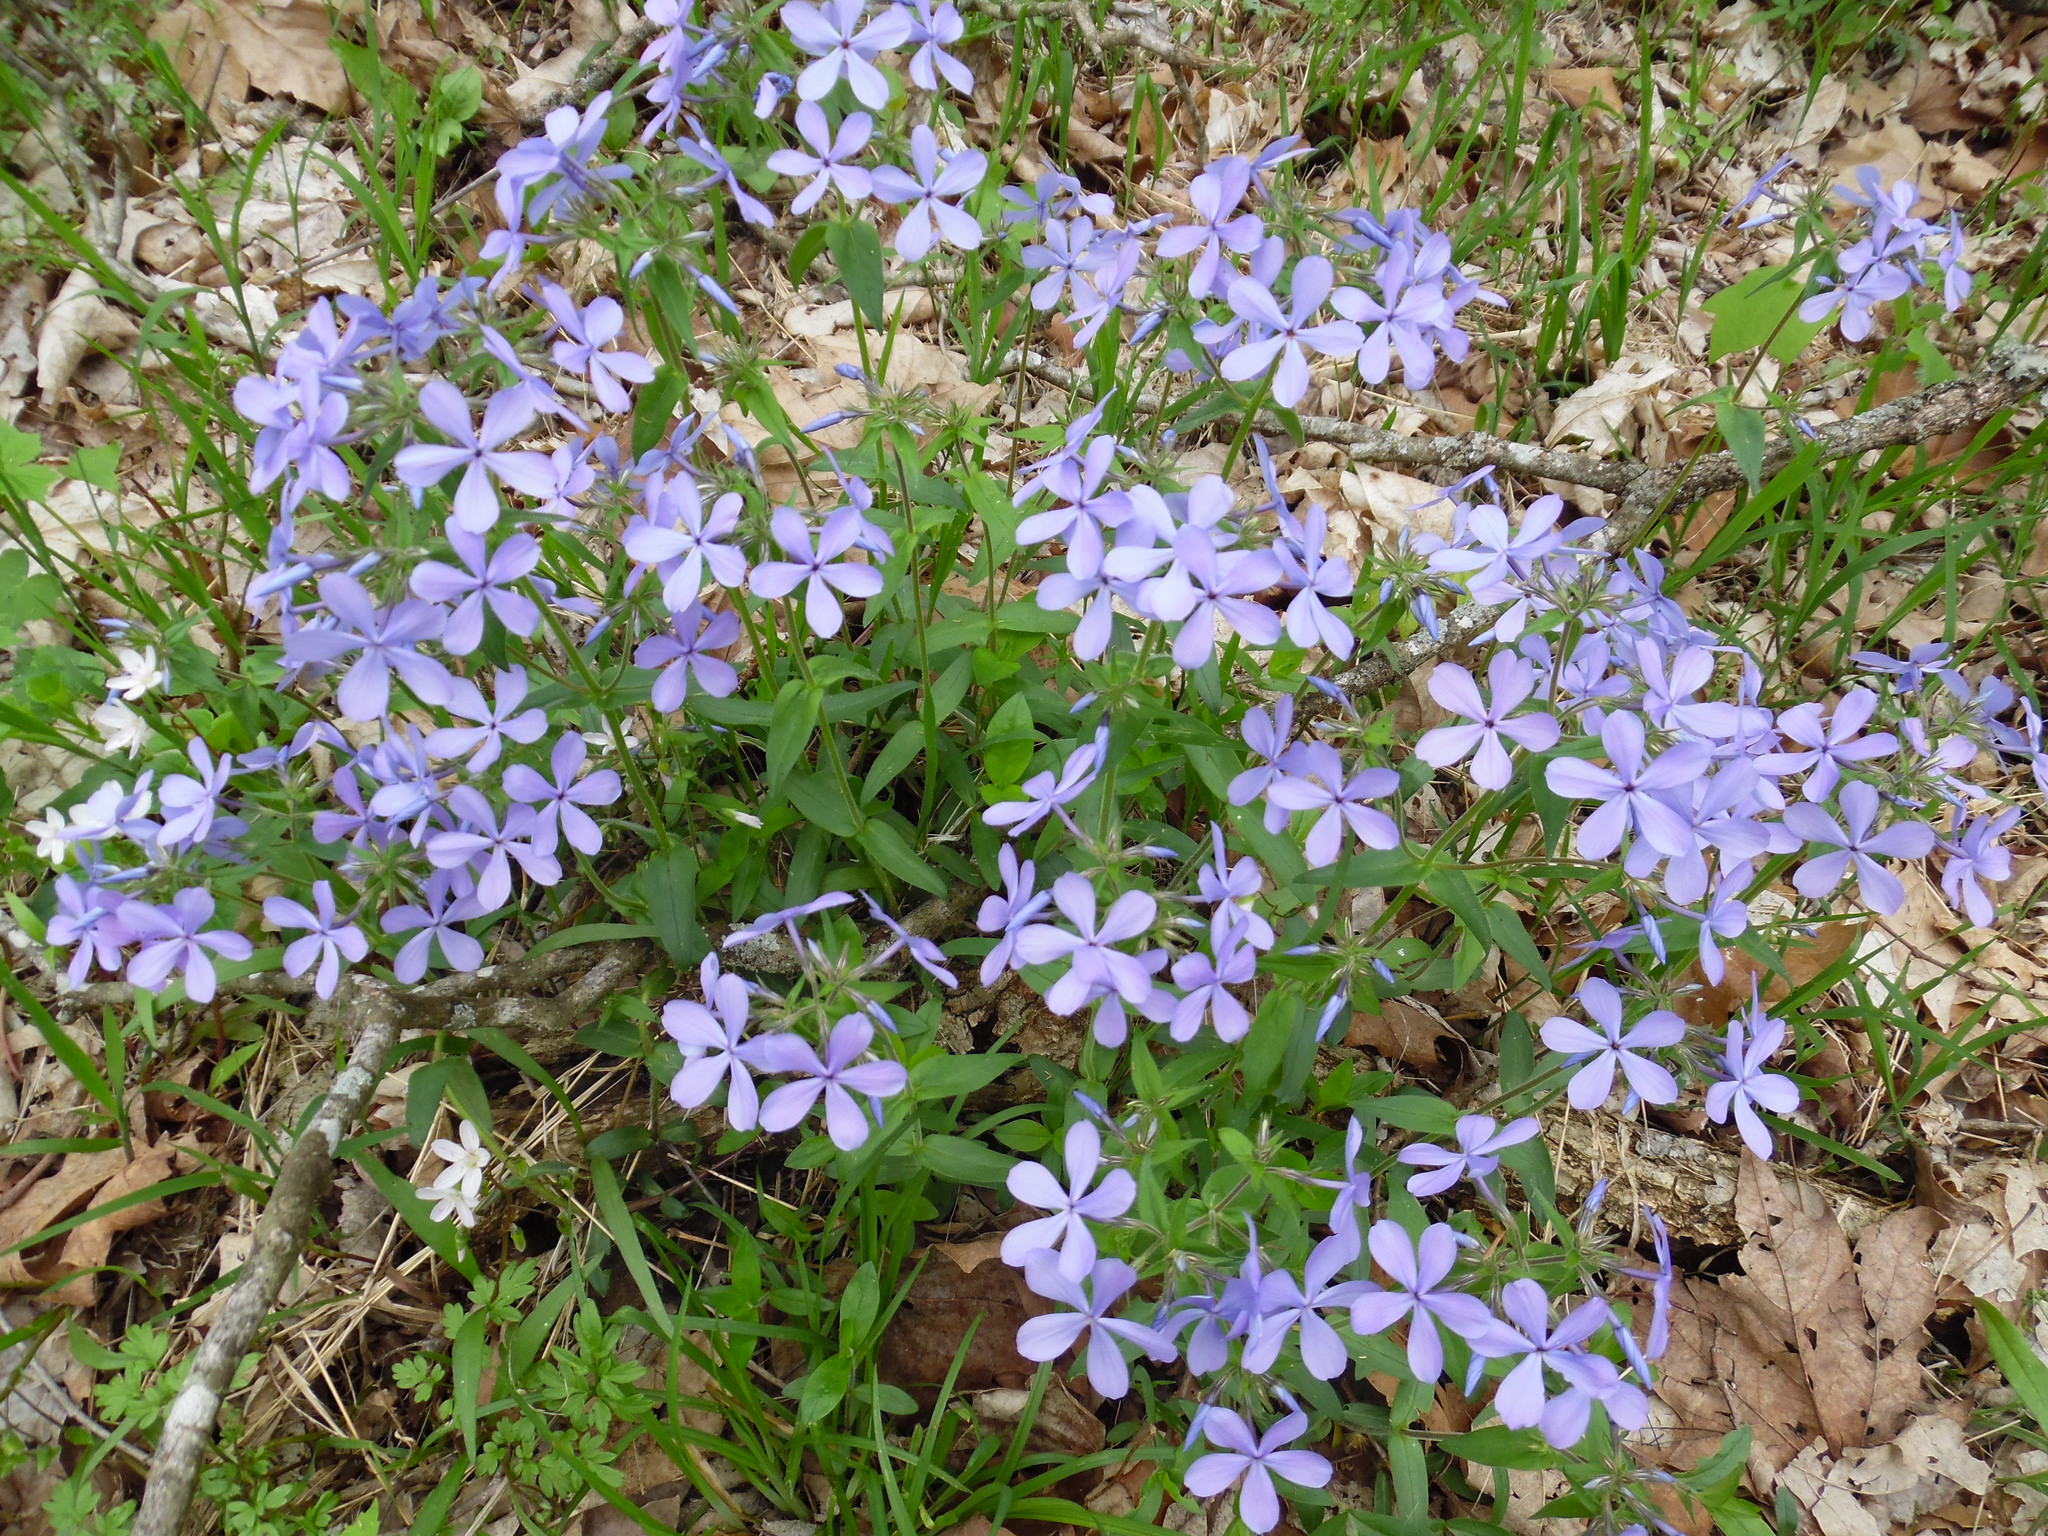 This phlox has nothing to do with food logs, but it sure is pretty.